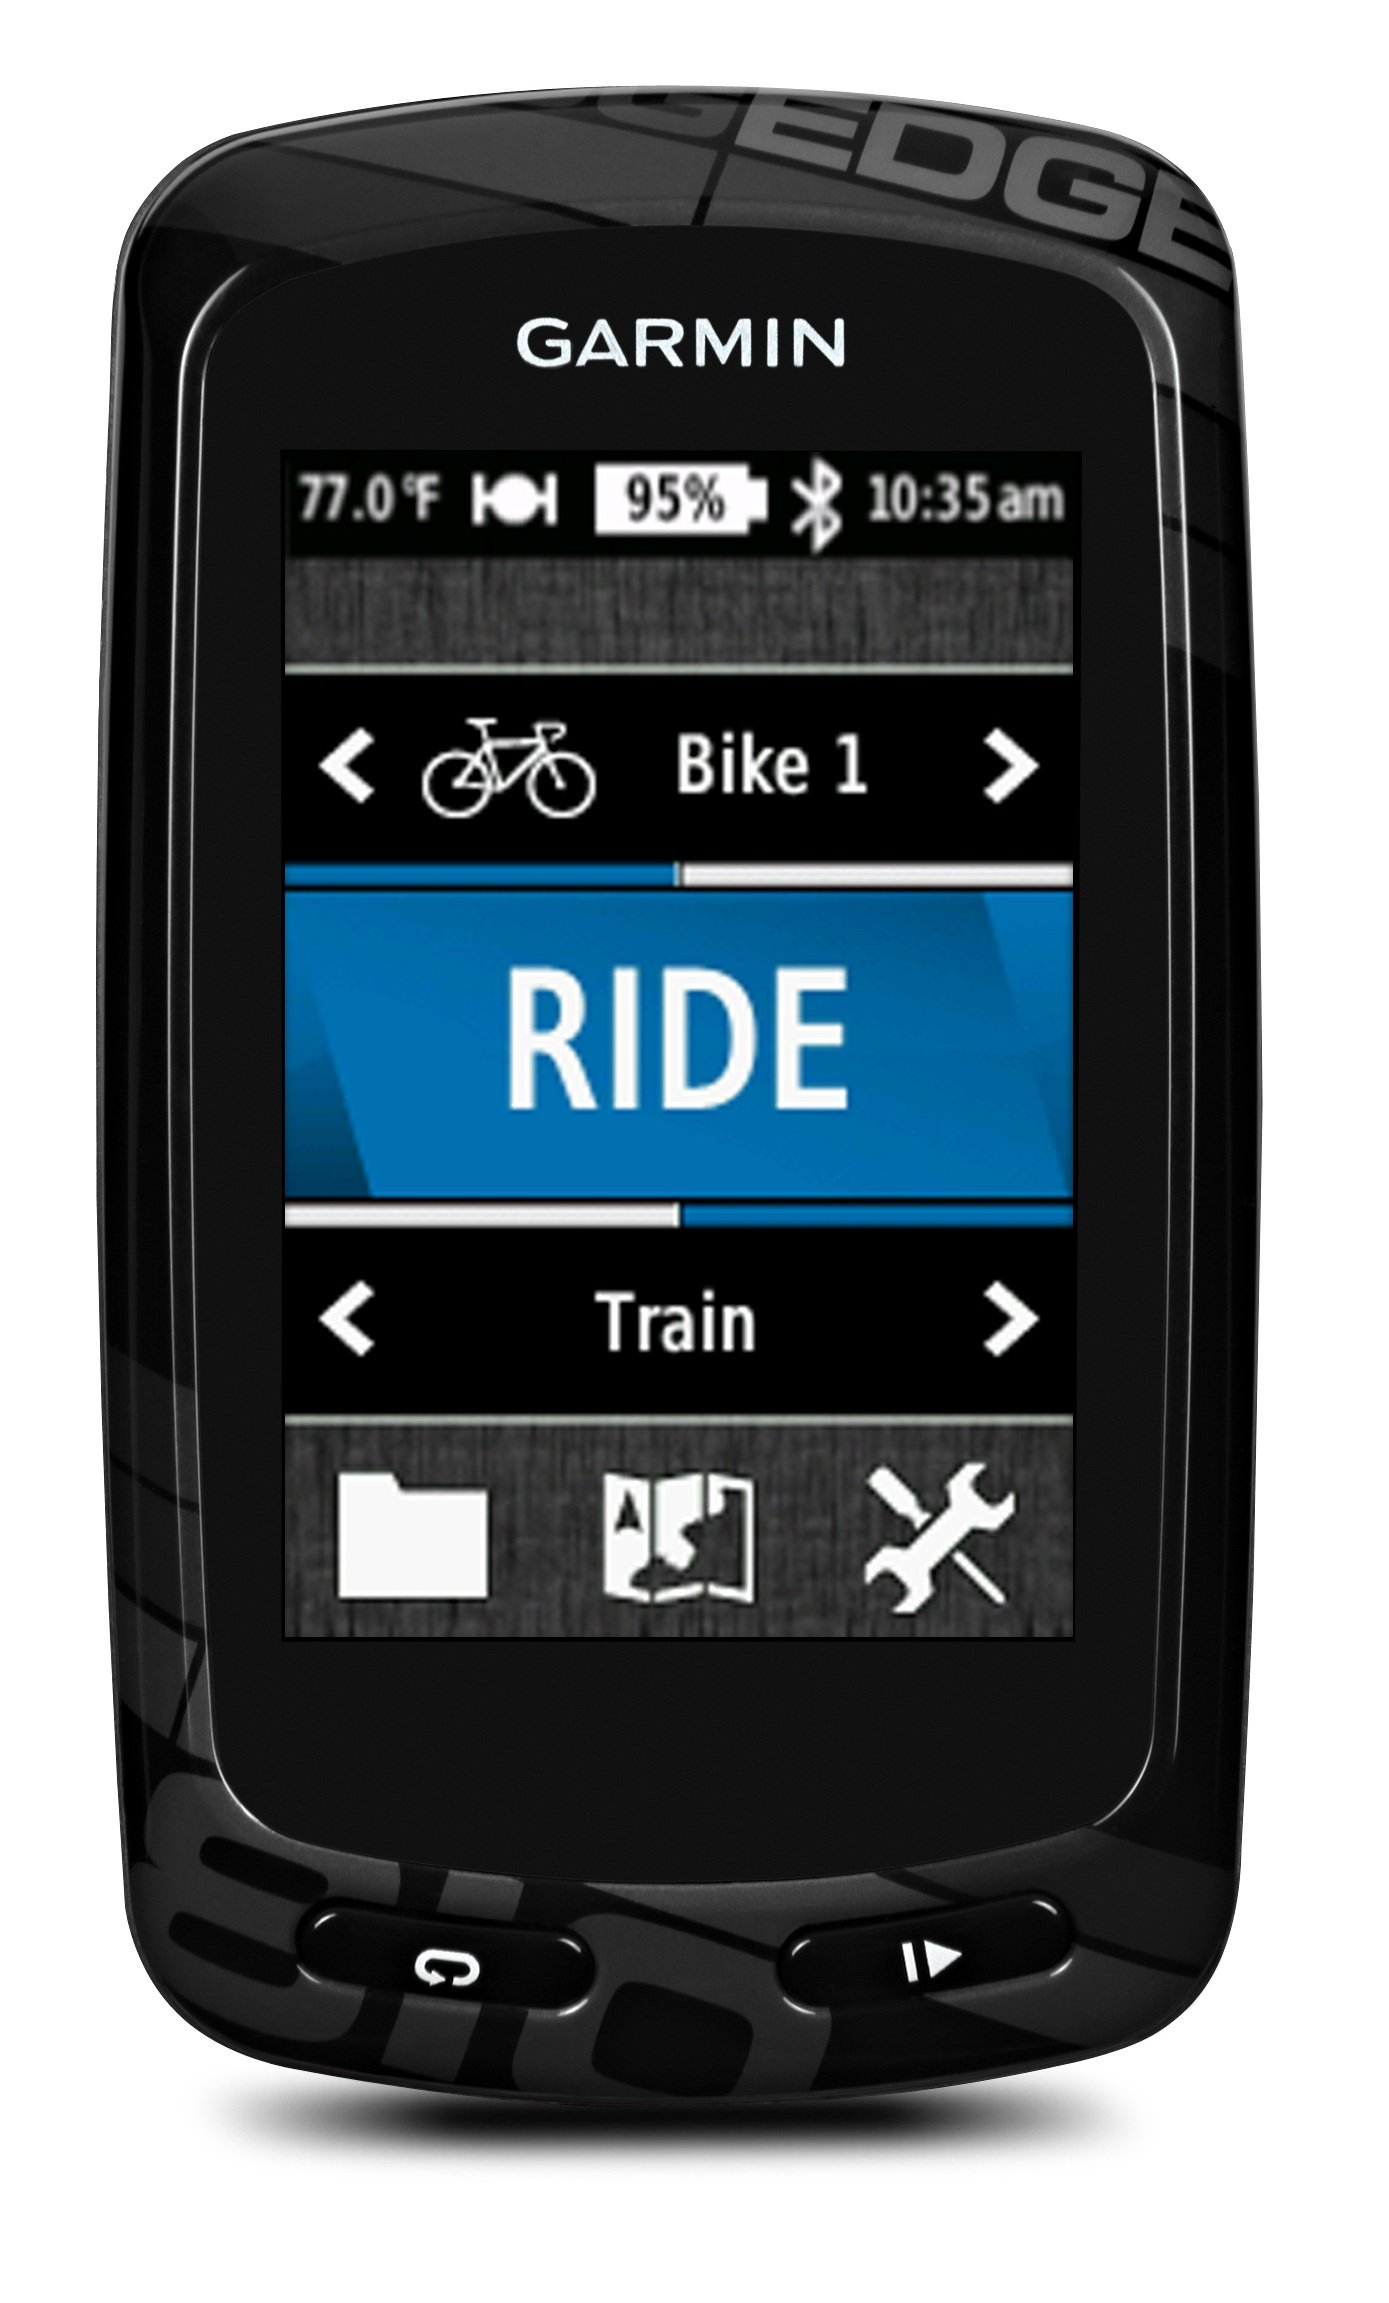 Garmin Edge 810 GPS Bike Computer - Black product image